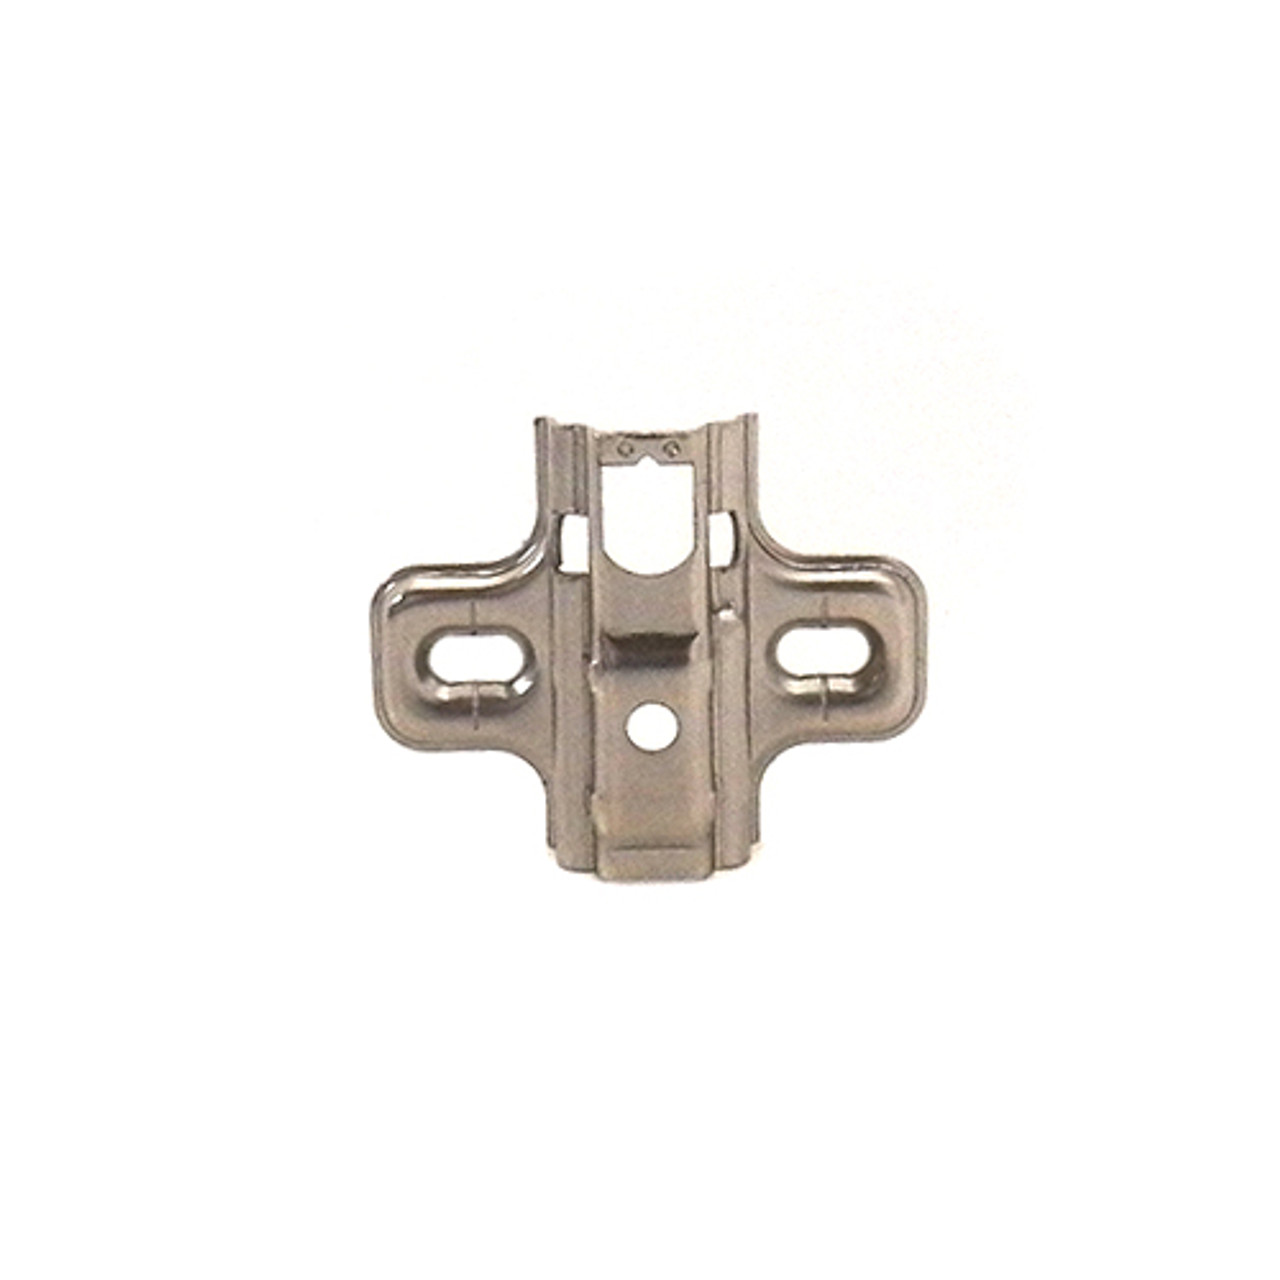 2mm Clip On Hinge Mounting Plate